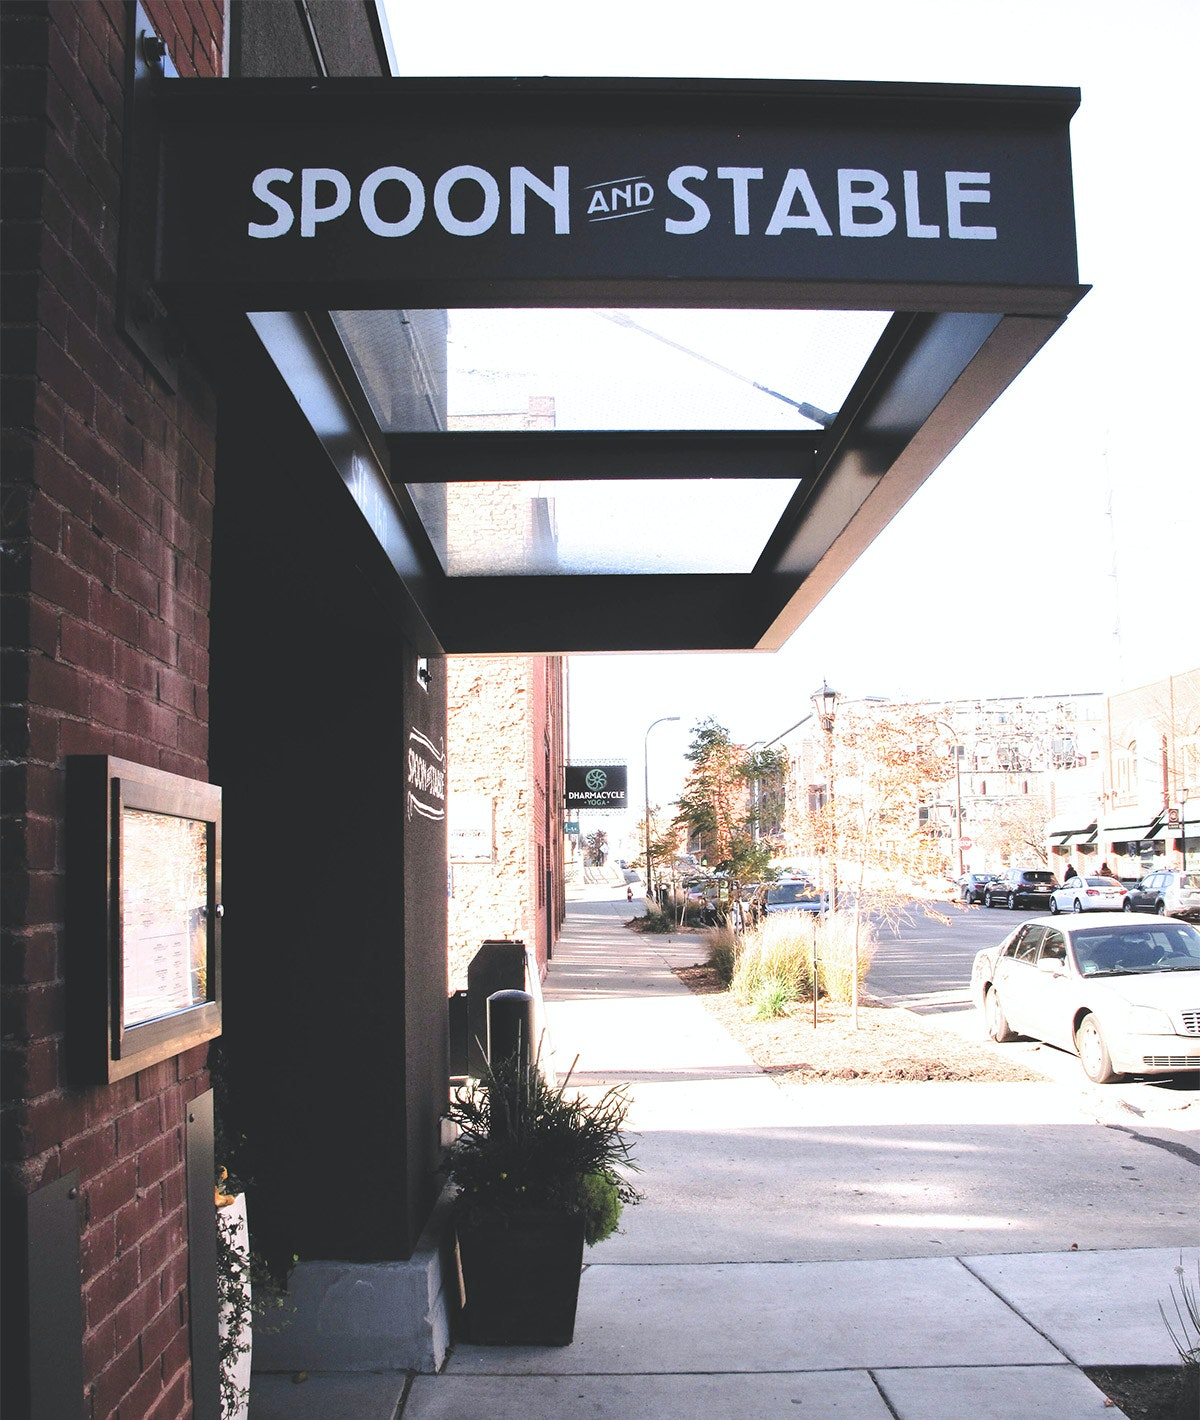 Spoon & Stable